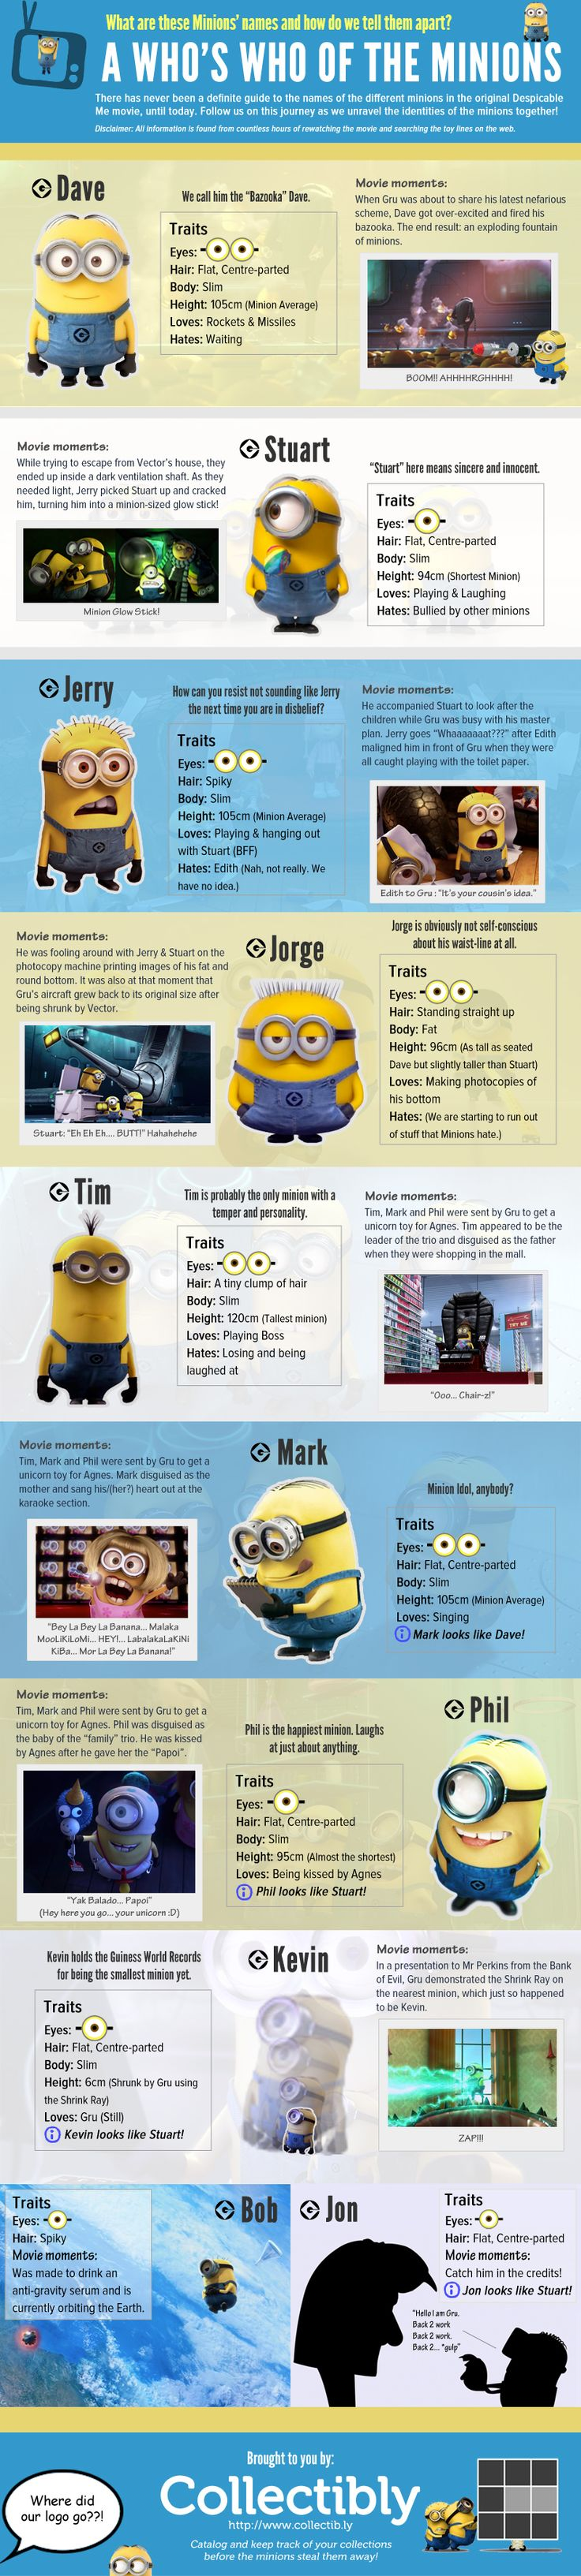 A Who's Who of the minions #minions #infographic